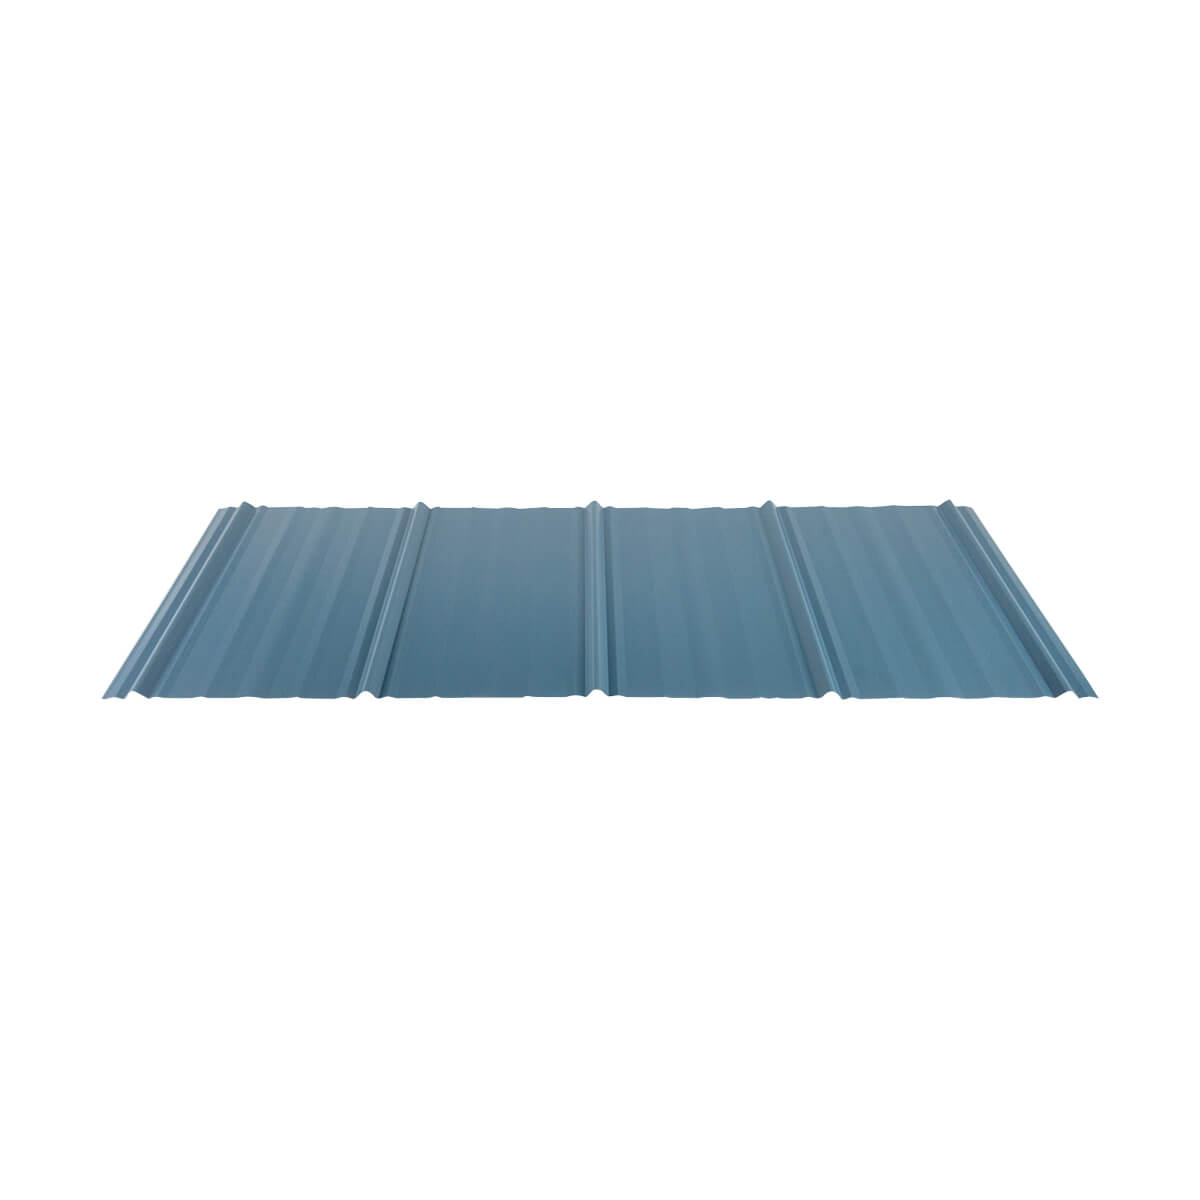 "WeatherShield 1 Metal Sheets or Panels - 32"" x 14'"